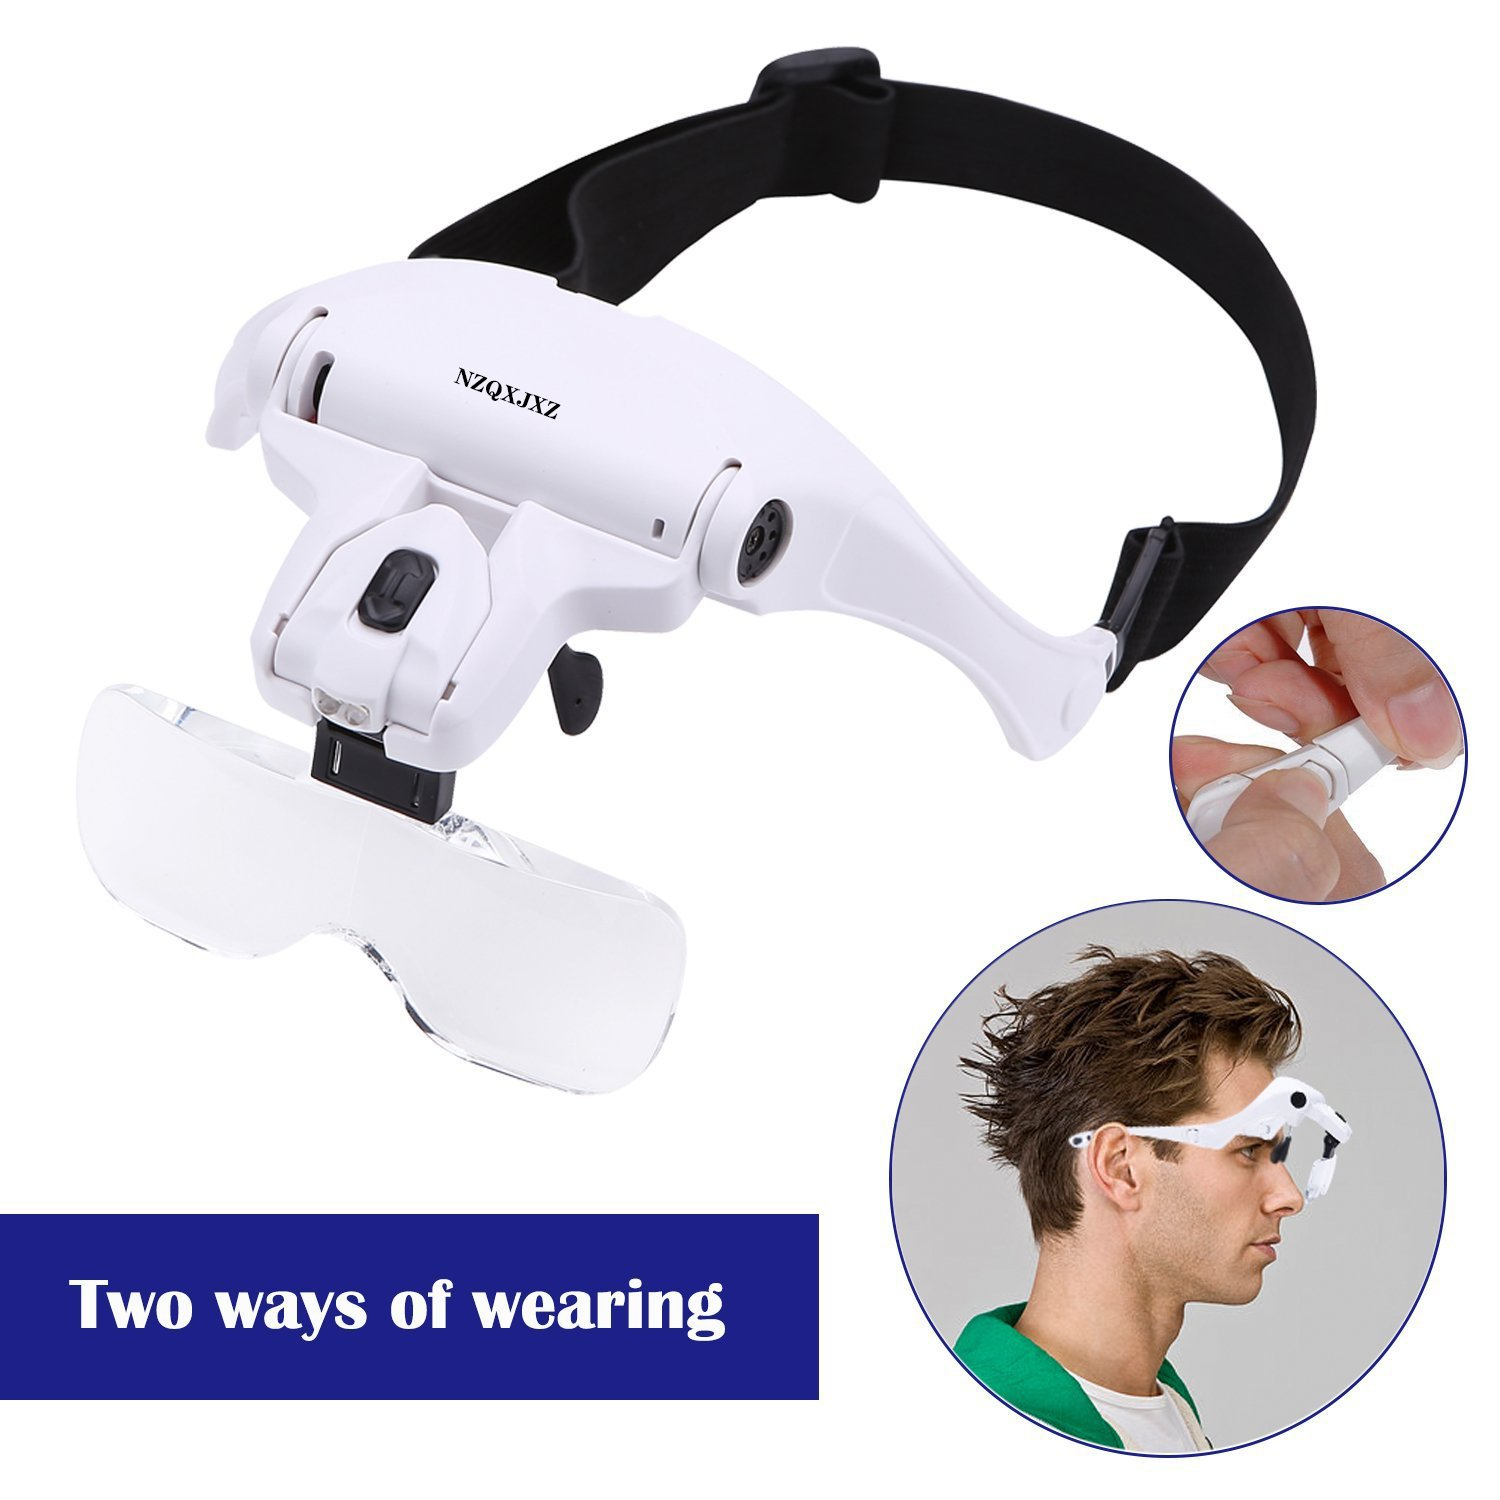 Headband Magnifier Glasses LED Magnifying Loupe Head Mount Magnifier Hands—Free Bracket and Headband are Interchangeable 5 Replaceable Lenses1.0X,1.5X,2.0X,2.5X,3.5X (Upgraded Version)